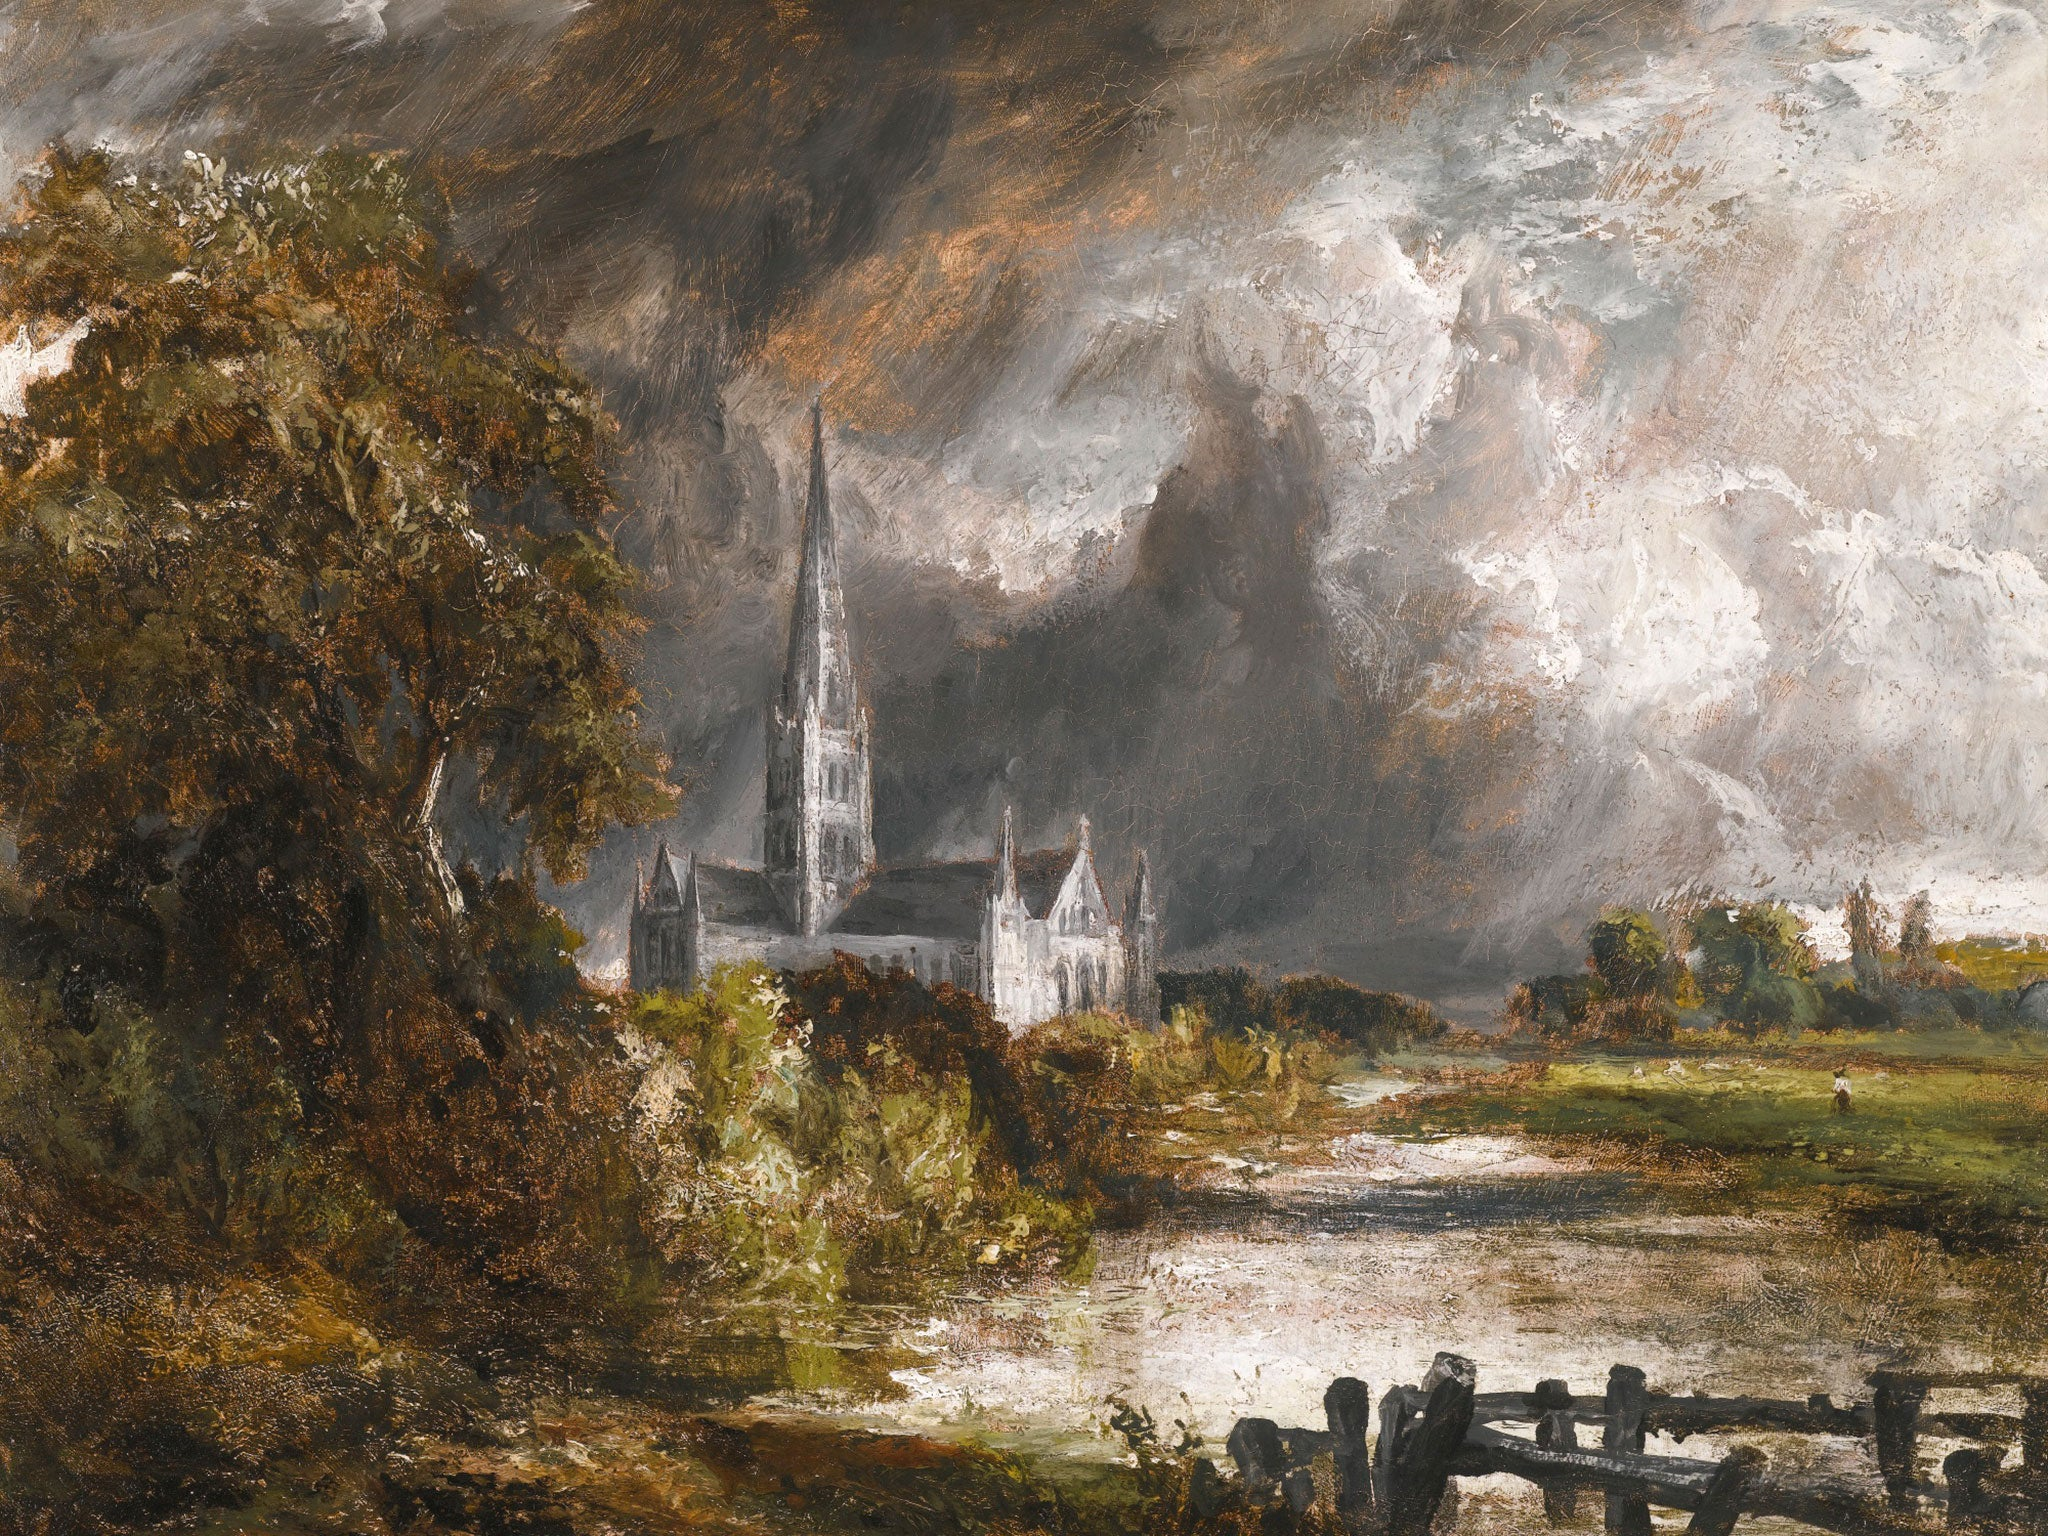 Baxter La Vista >> John Constable painting set to fetch up to £2m at Sotheby ...